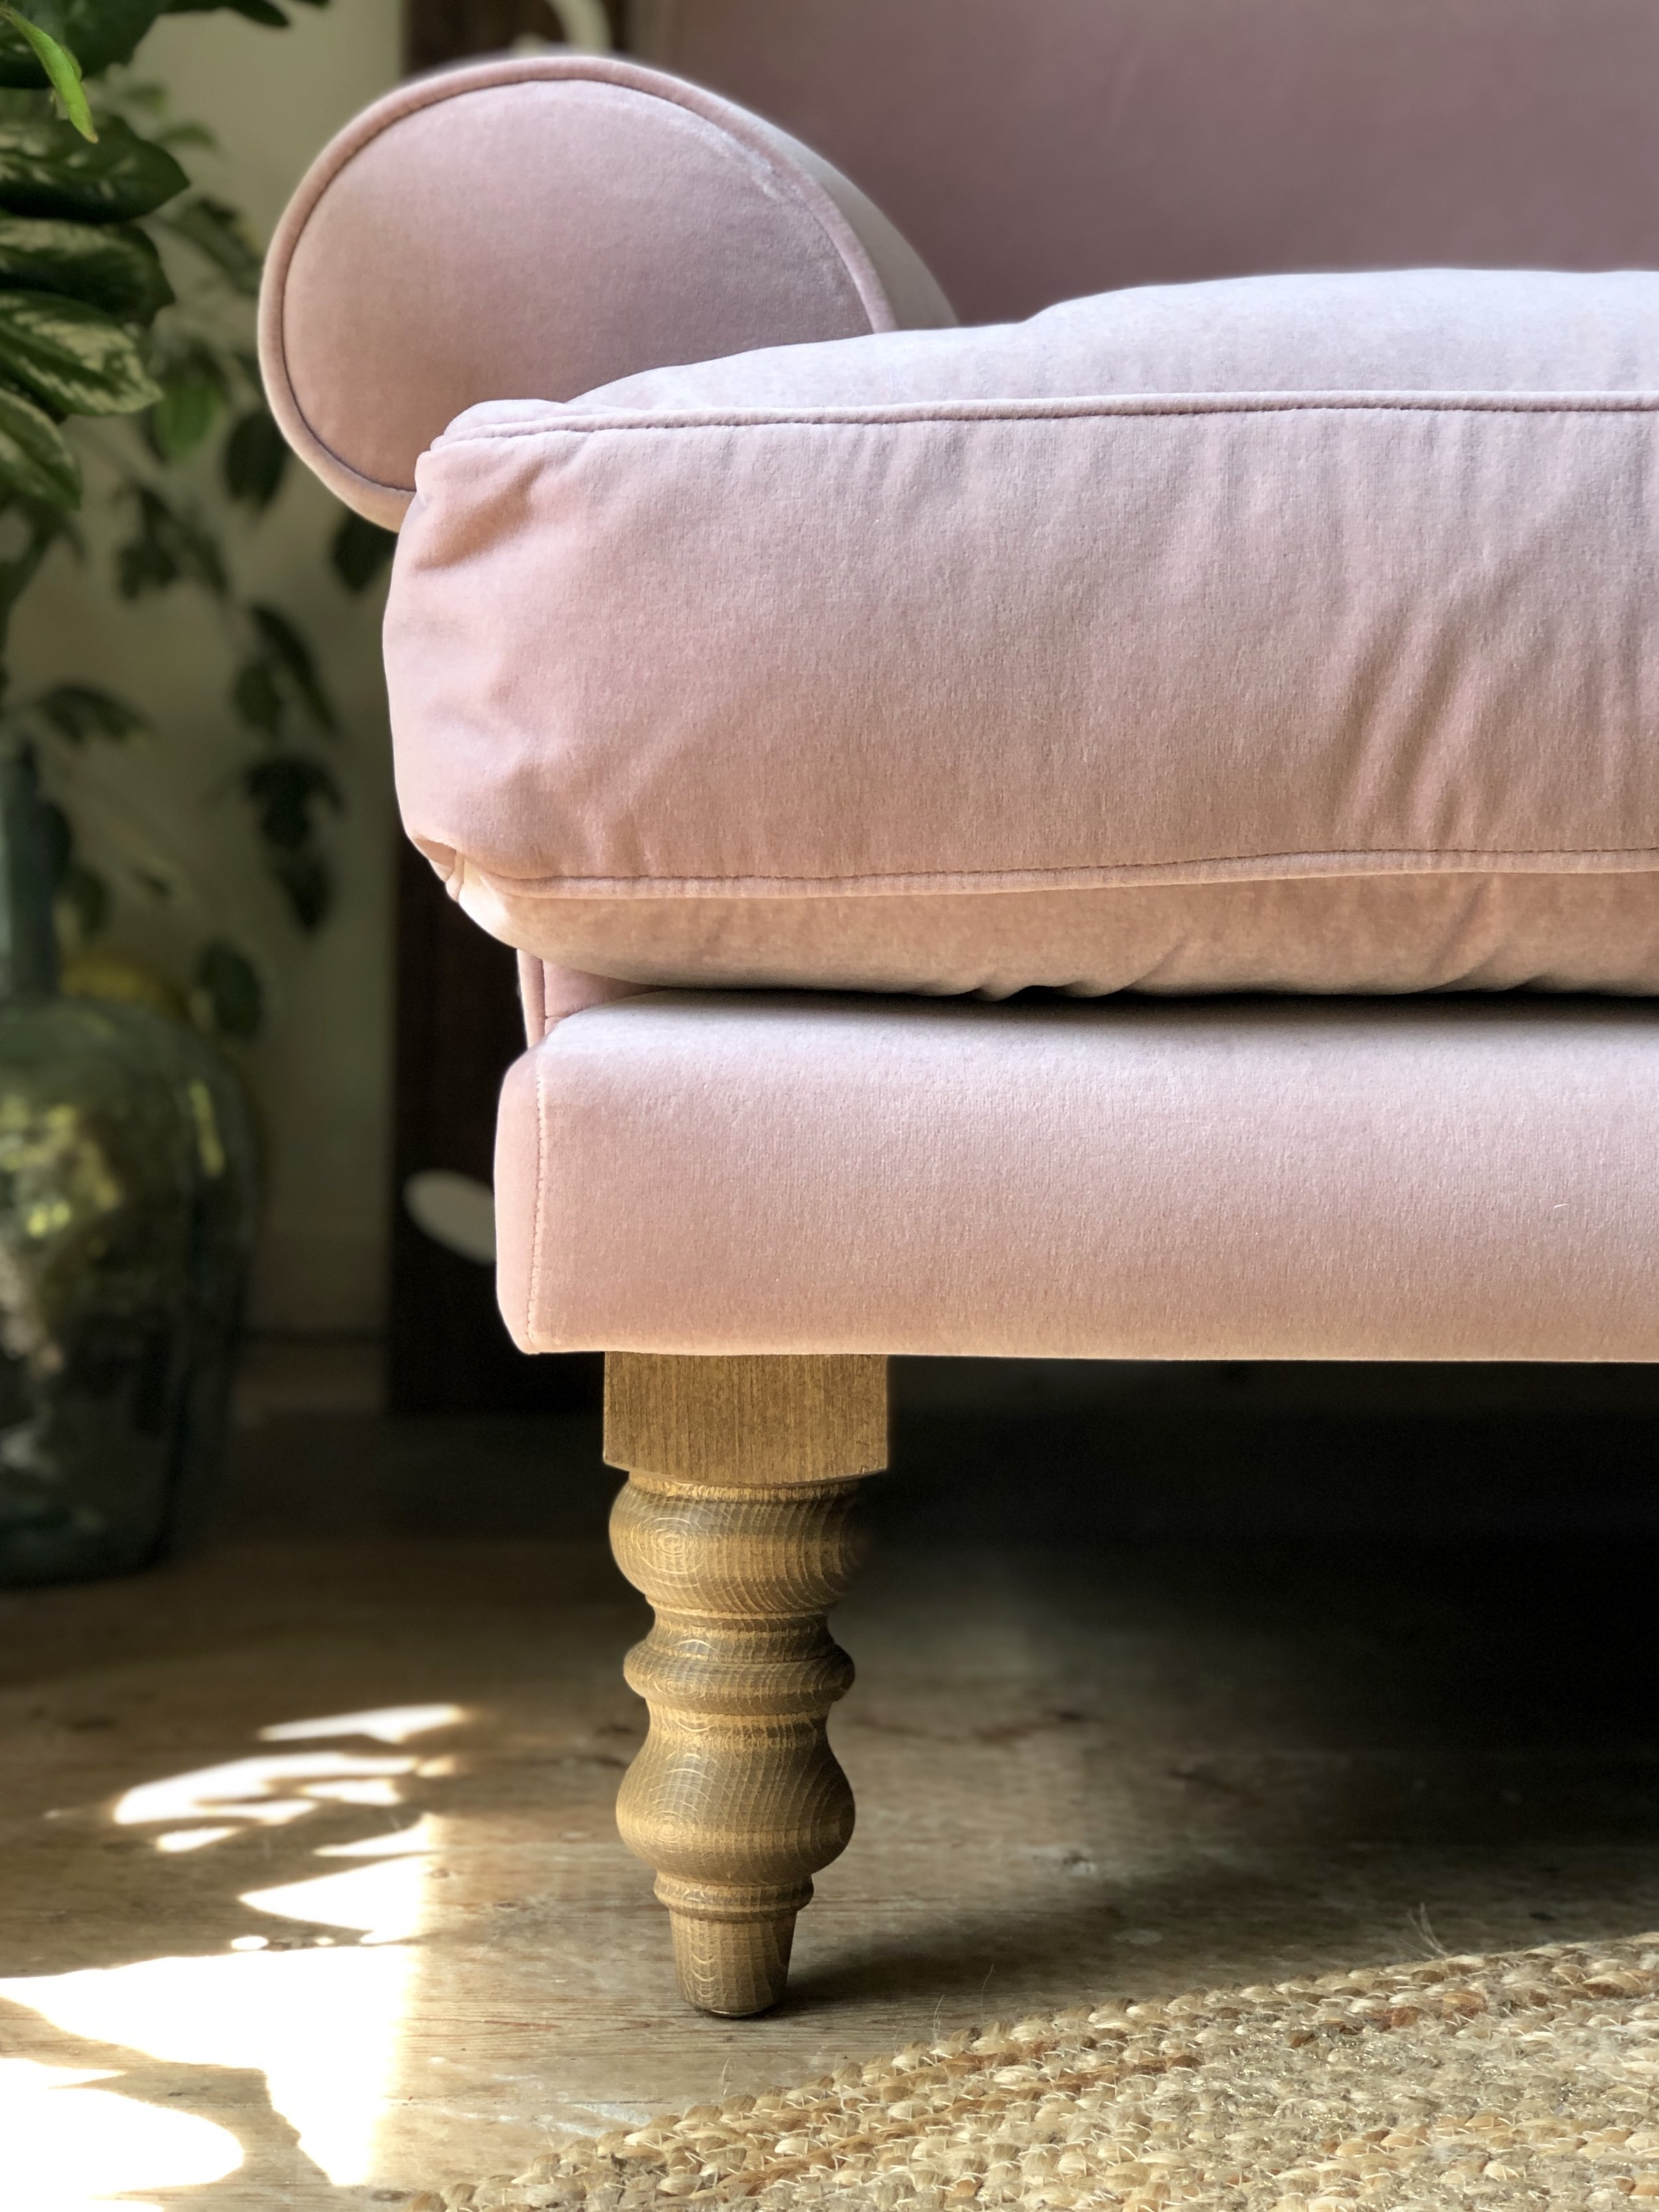 The 'English Oak' legs which work perfectly with the flooring we will be using in the renovation….